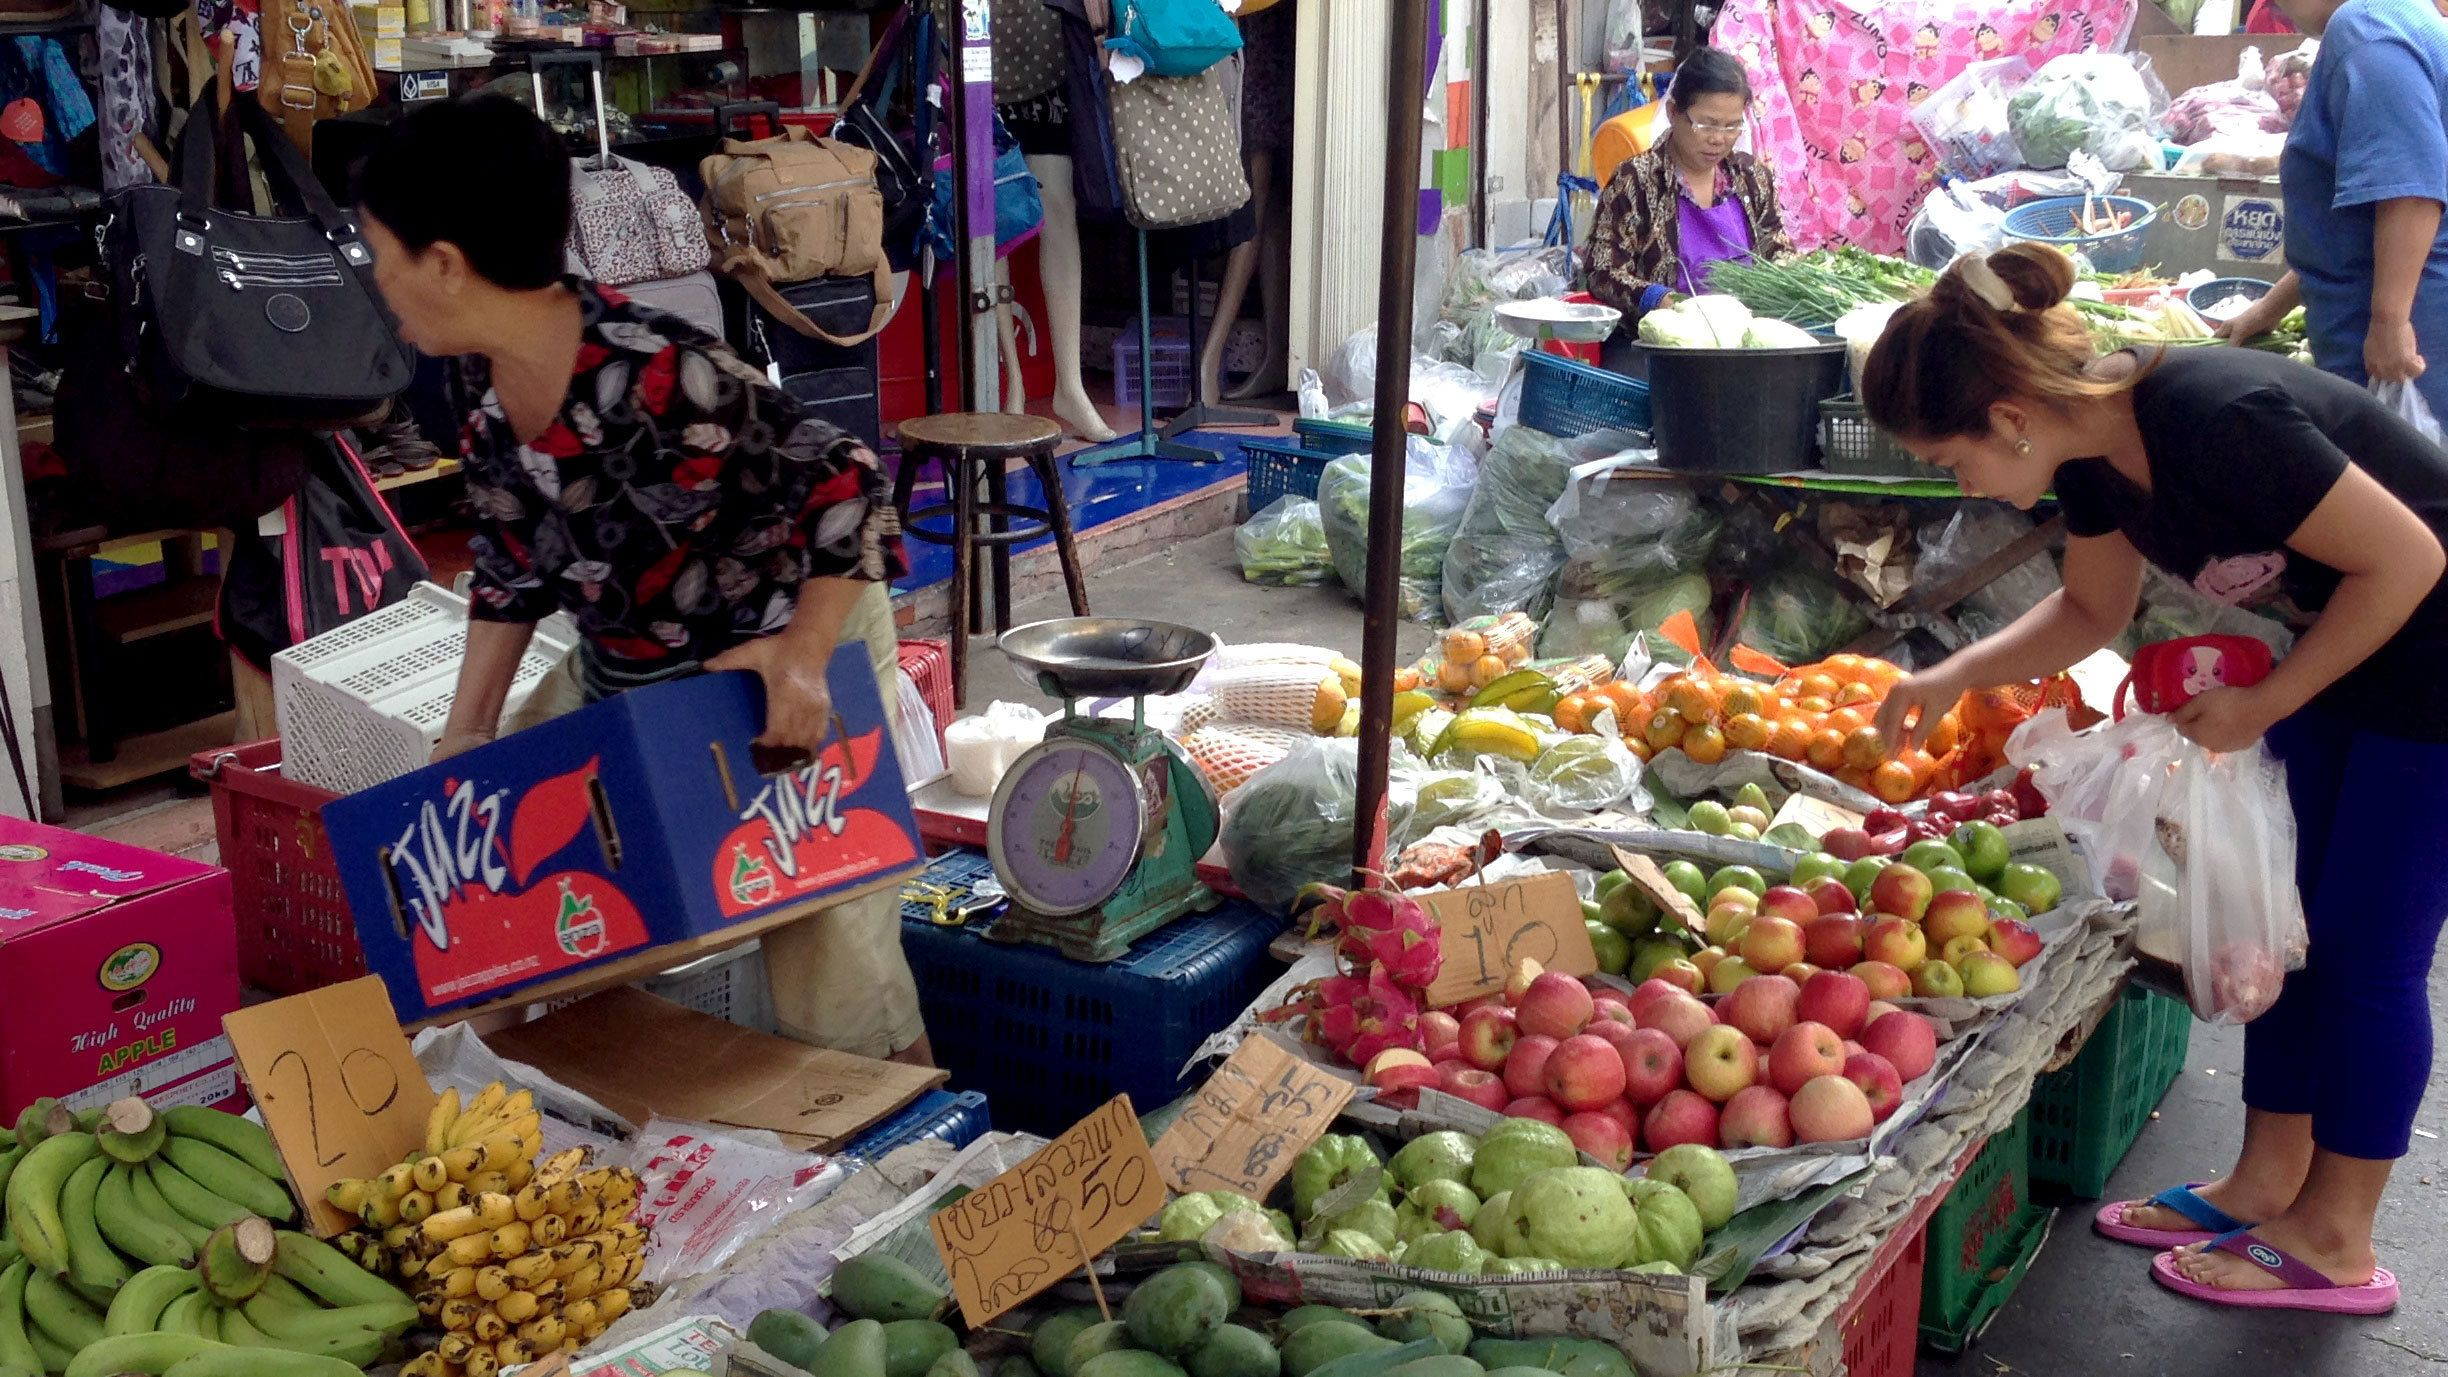 Shopping for local produce at the market in Bangkok